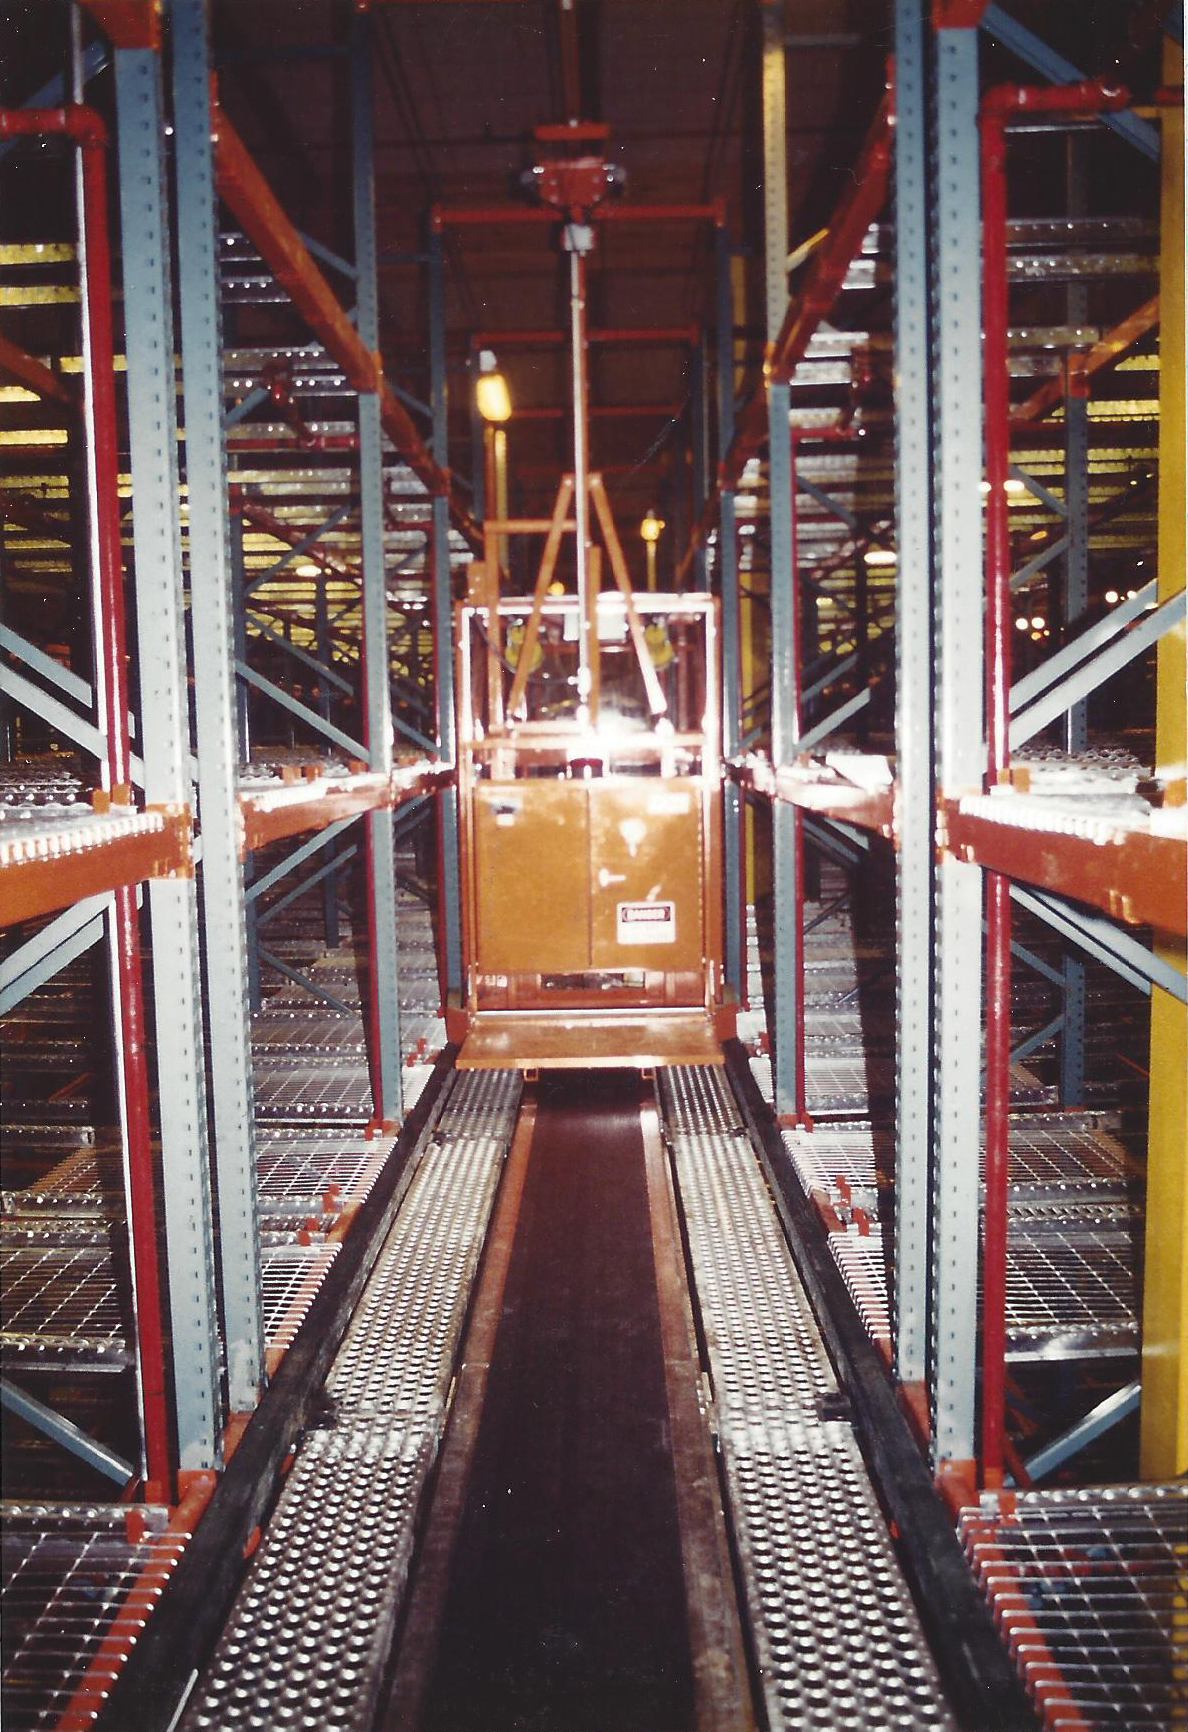 Pallet Flow System with Machine Interface Two Levels High Freezer Application